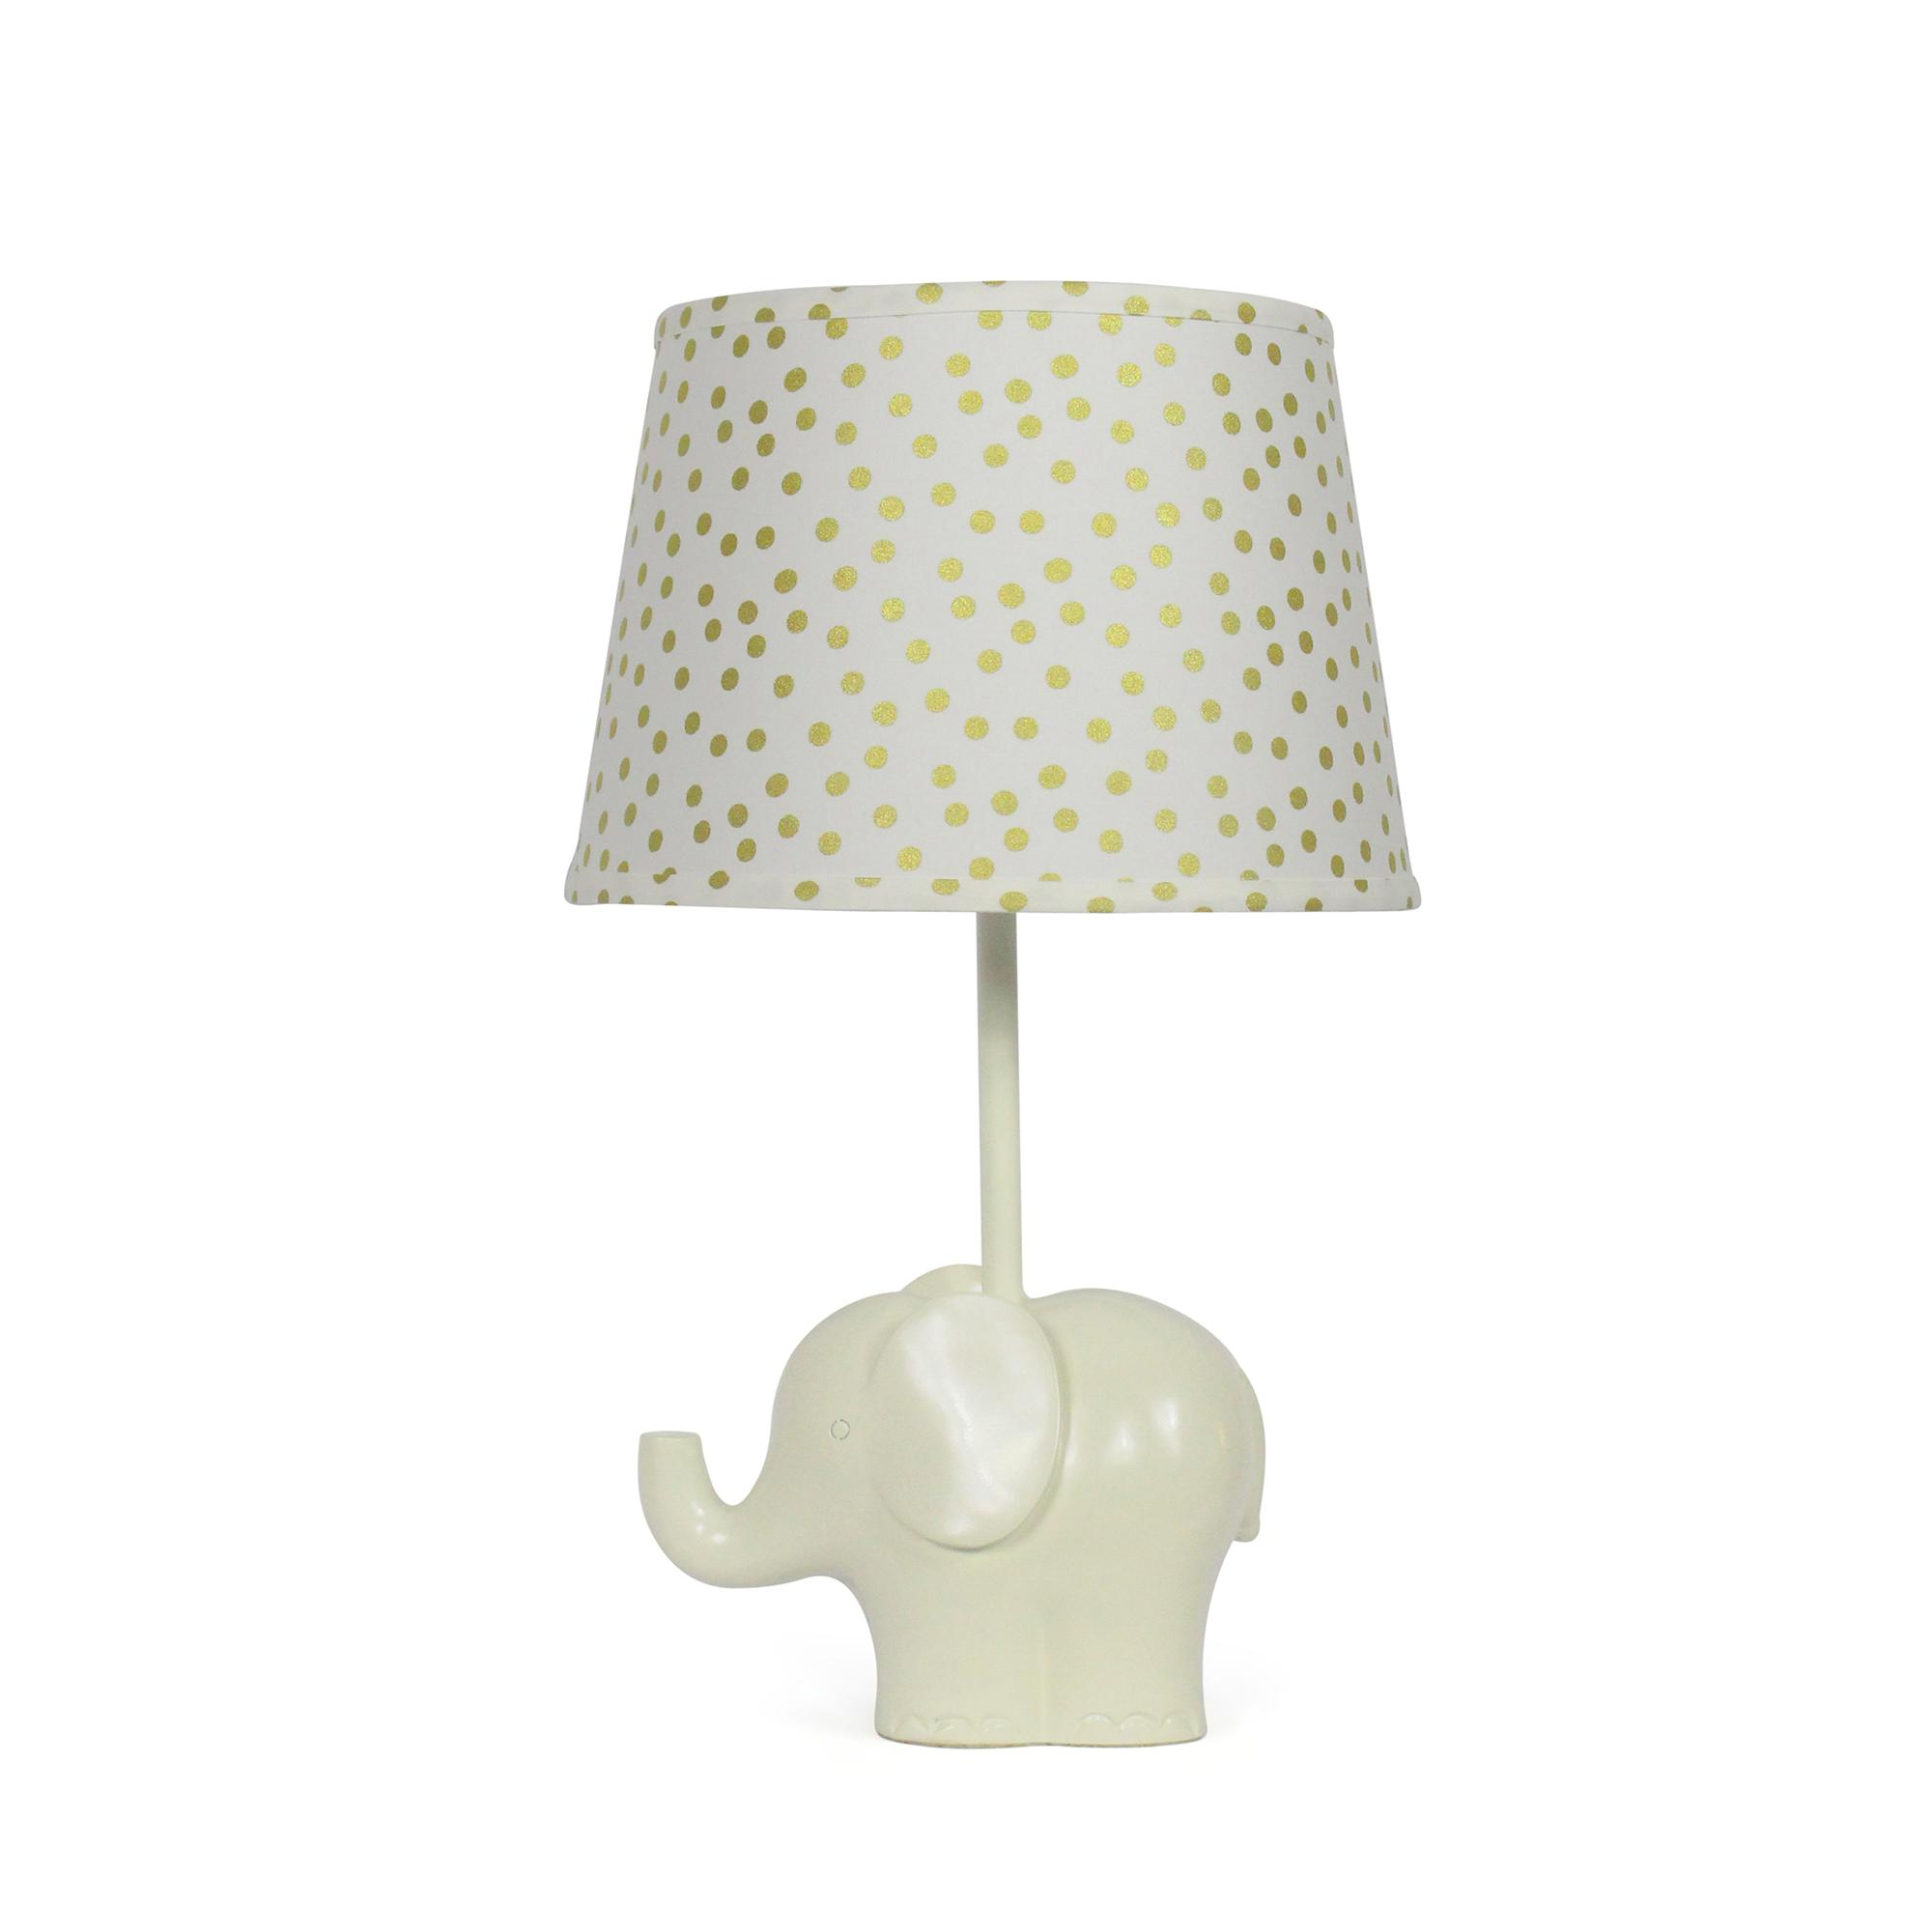 Elephant lamp for nursery - Everything About This Little Elephant Lamp Is Sweet From His Upturned Trunk To His Soft White Body He Is A Happy Companion To Any Nursery